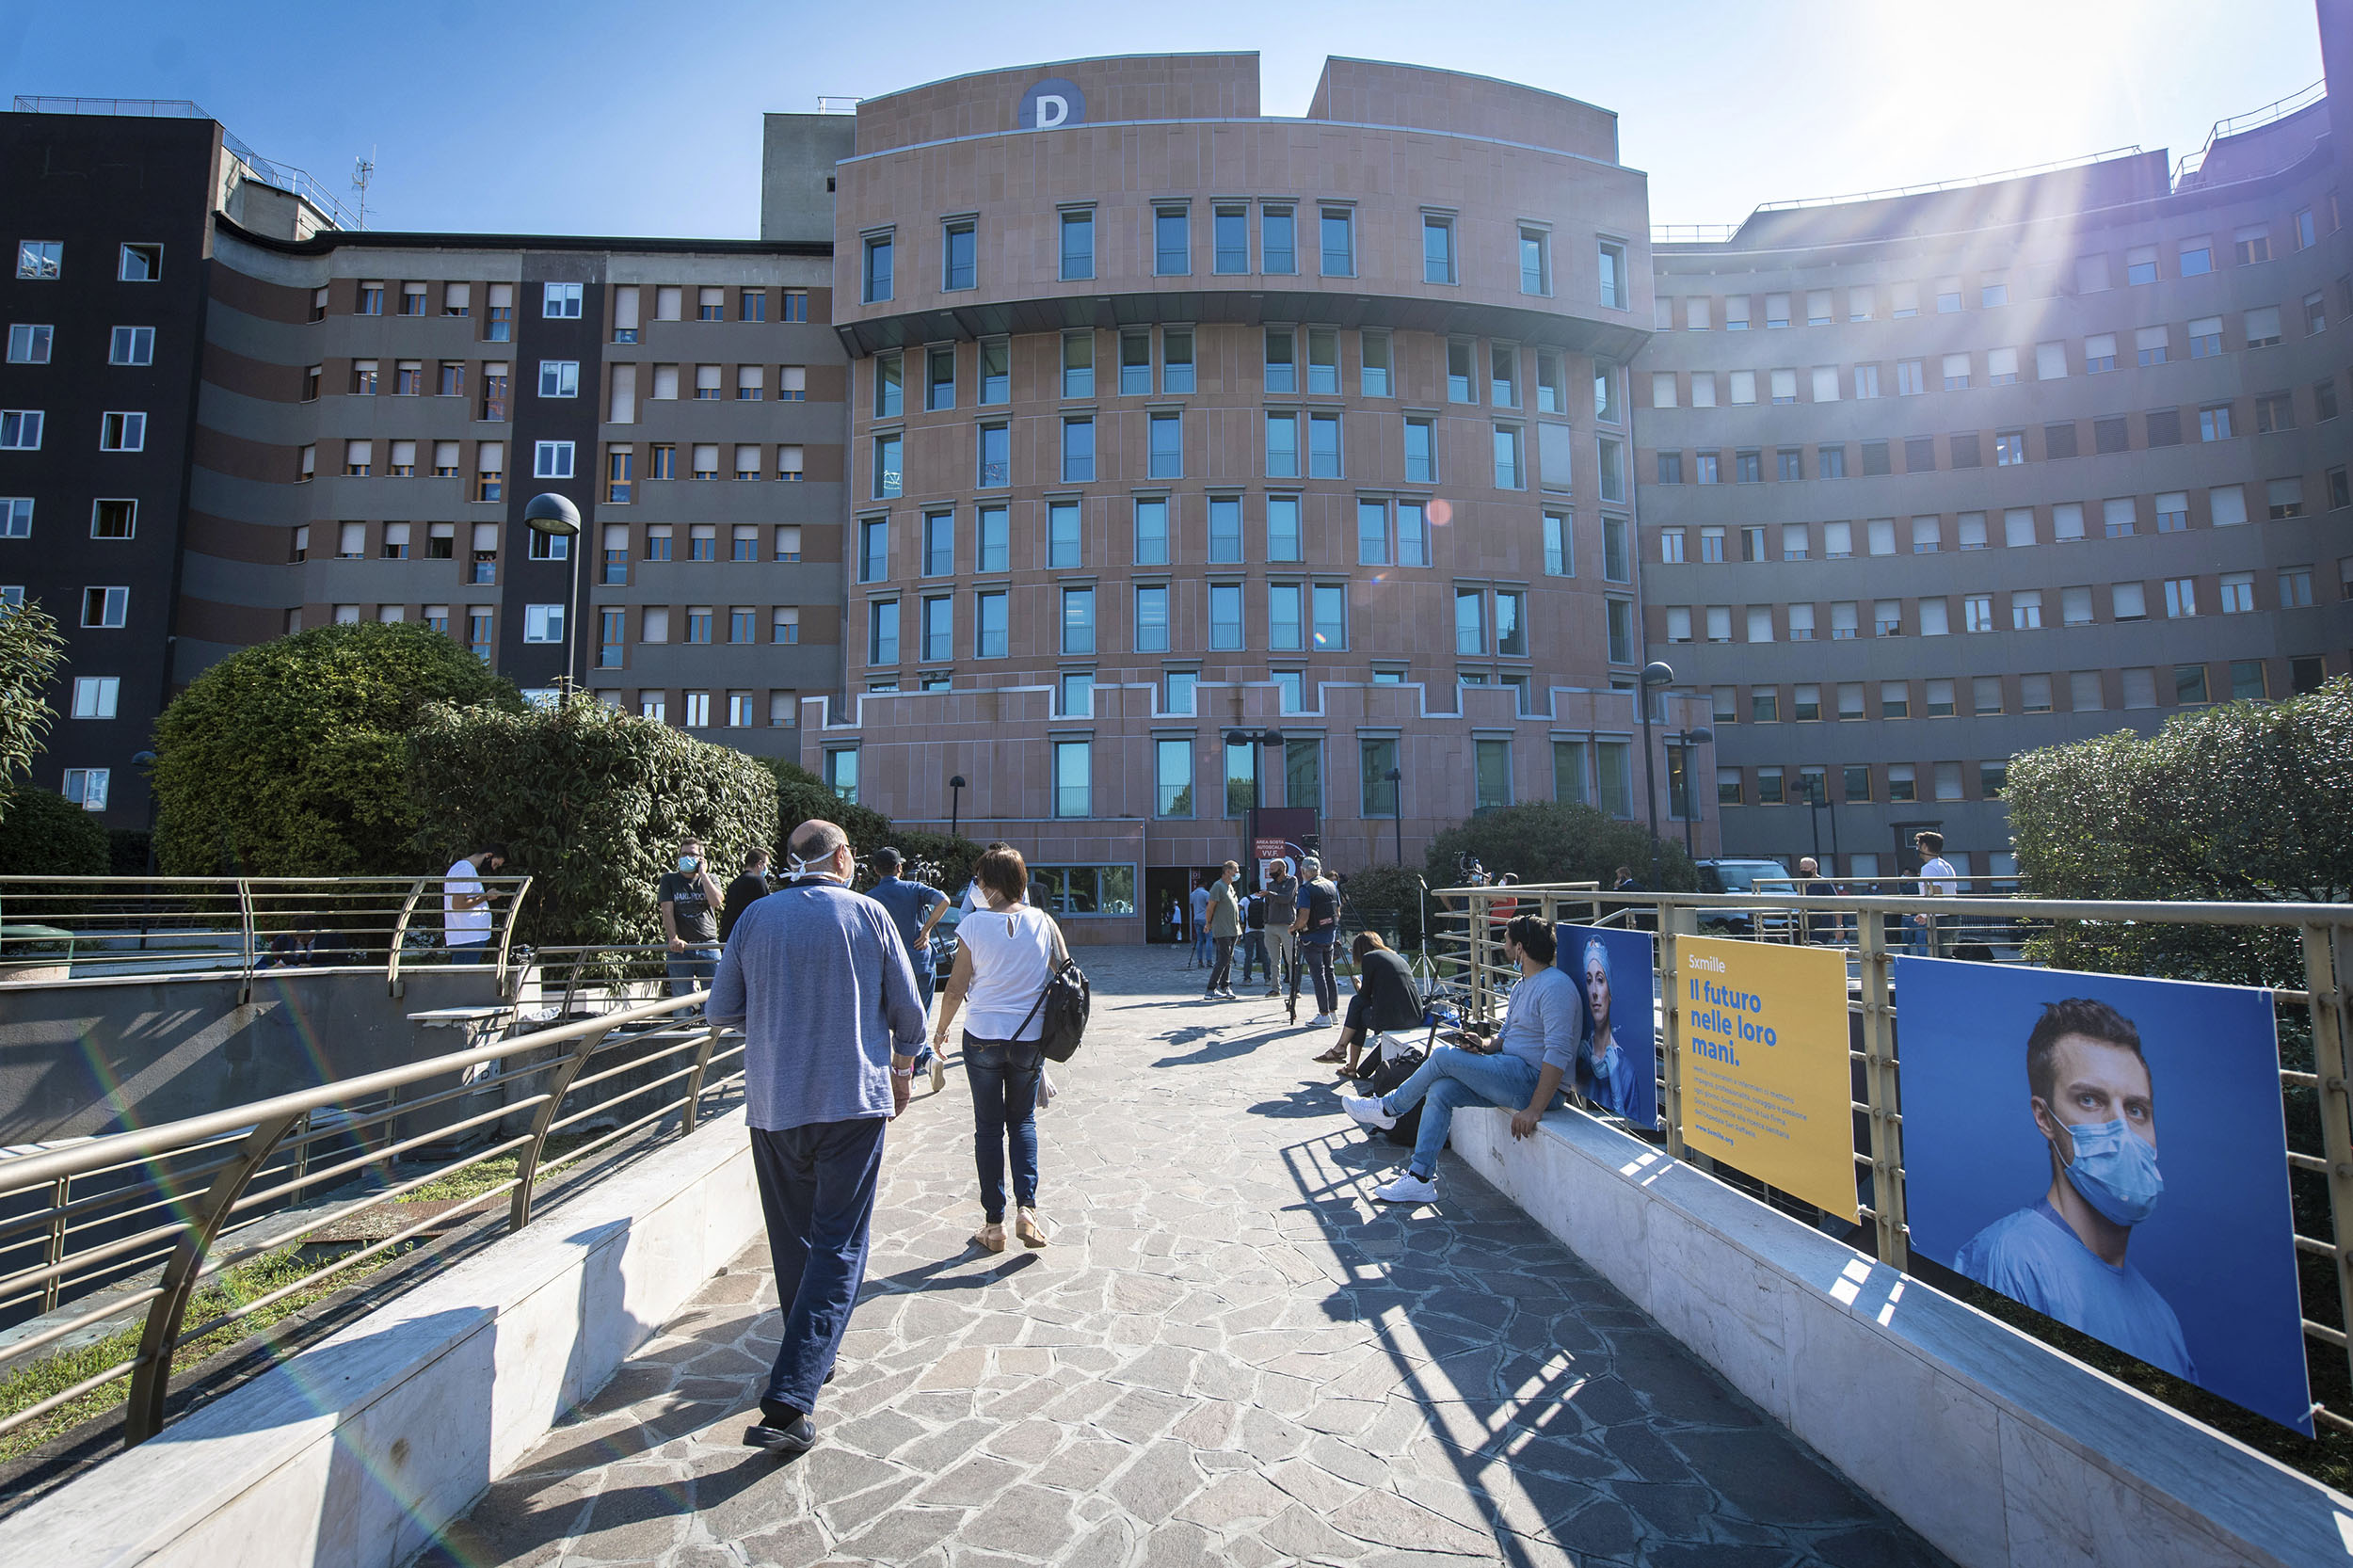 A view of the San Raffaele hospital where former Italian premier Silvio Berlusconi is admitted, in Milan, Italy, on Friday, September 4.